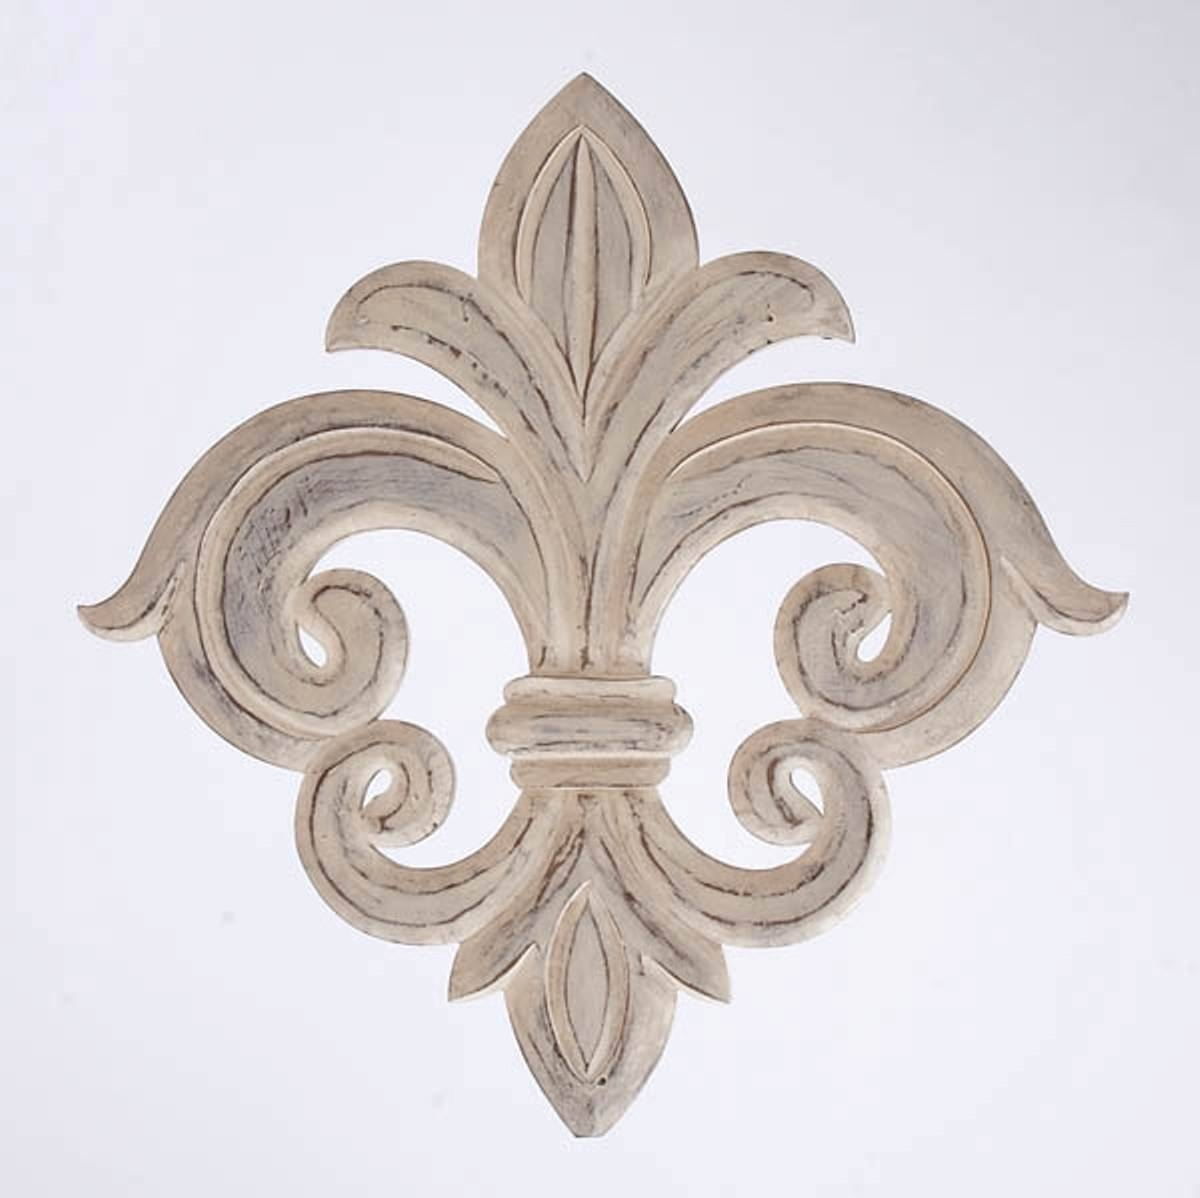 Fleur De Lis Wall Decor With Current Fleur De Lis Metal Wall Art (View 11 of 25)